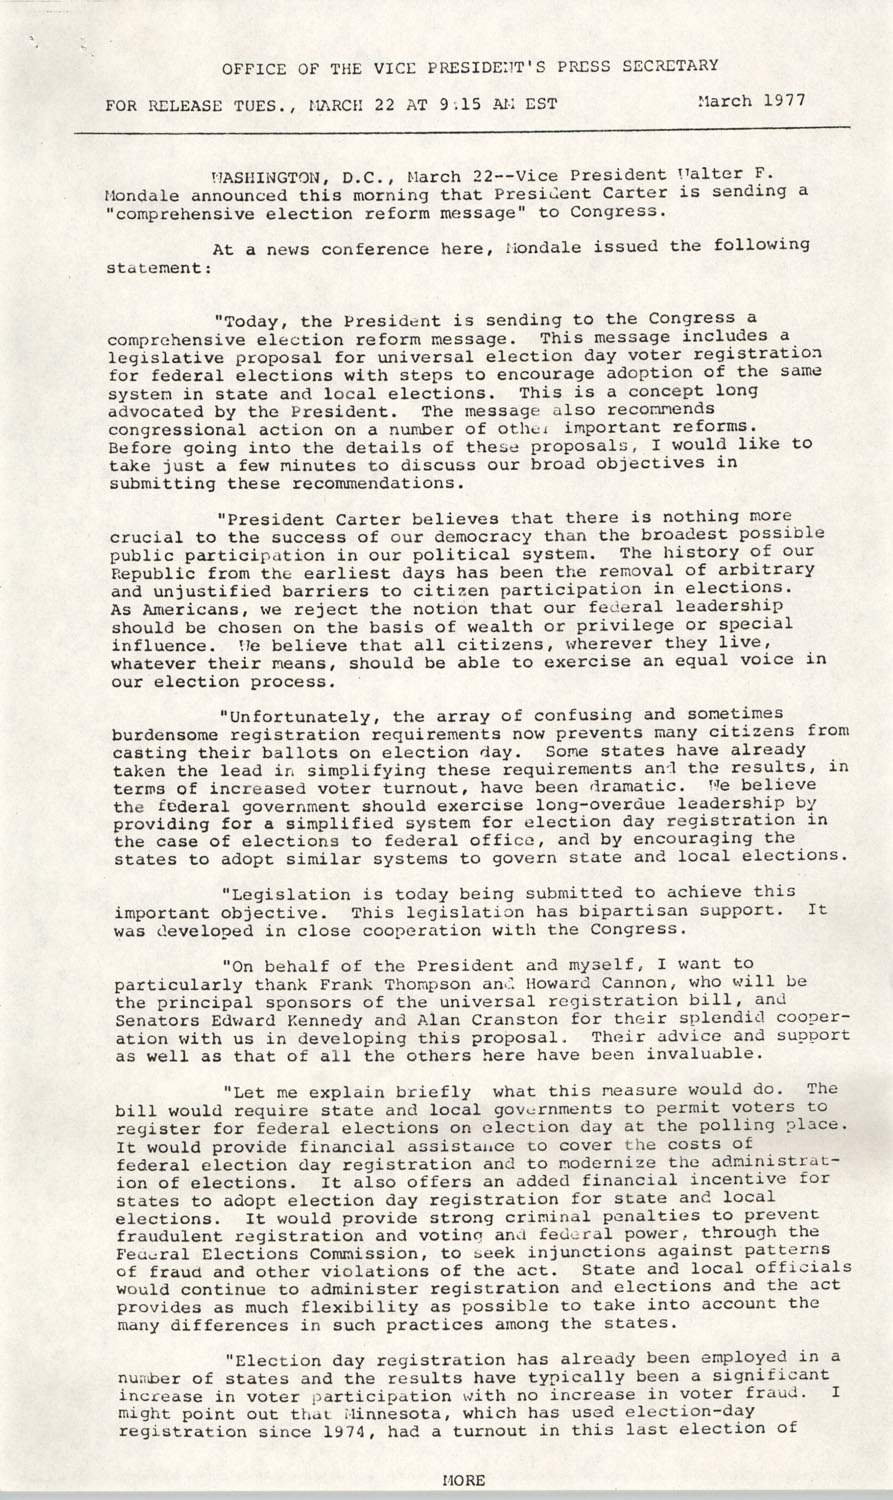 Press Release Statement, March 1977, Page 1